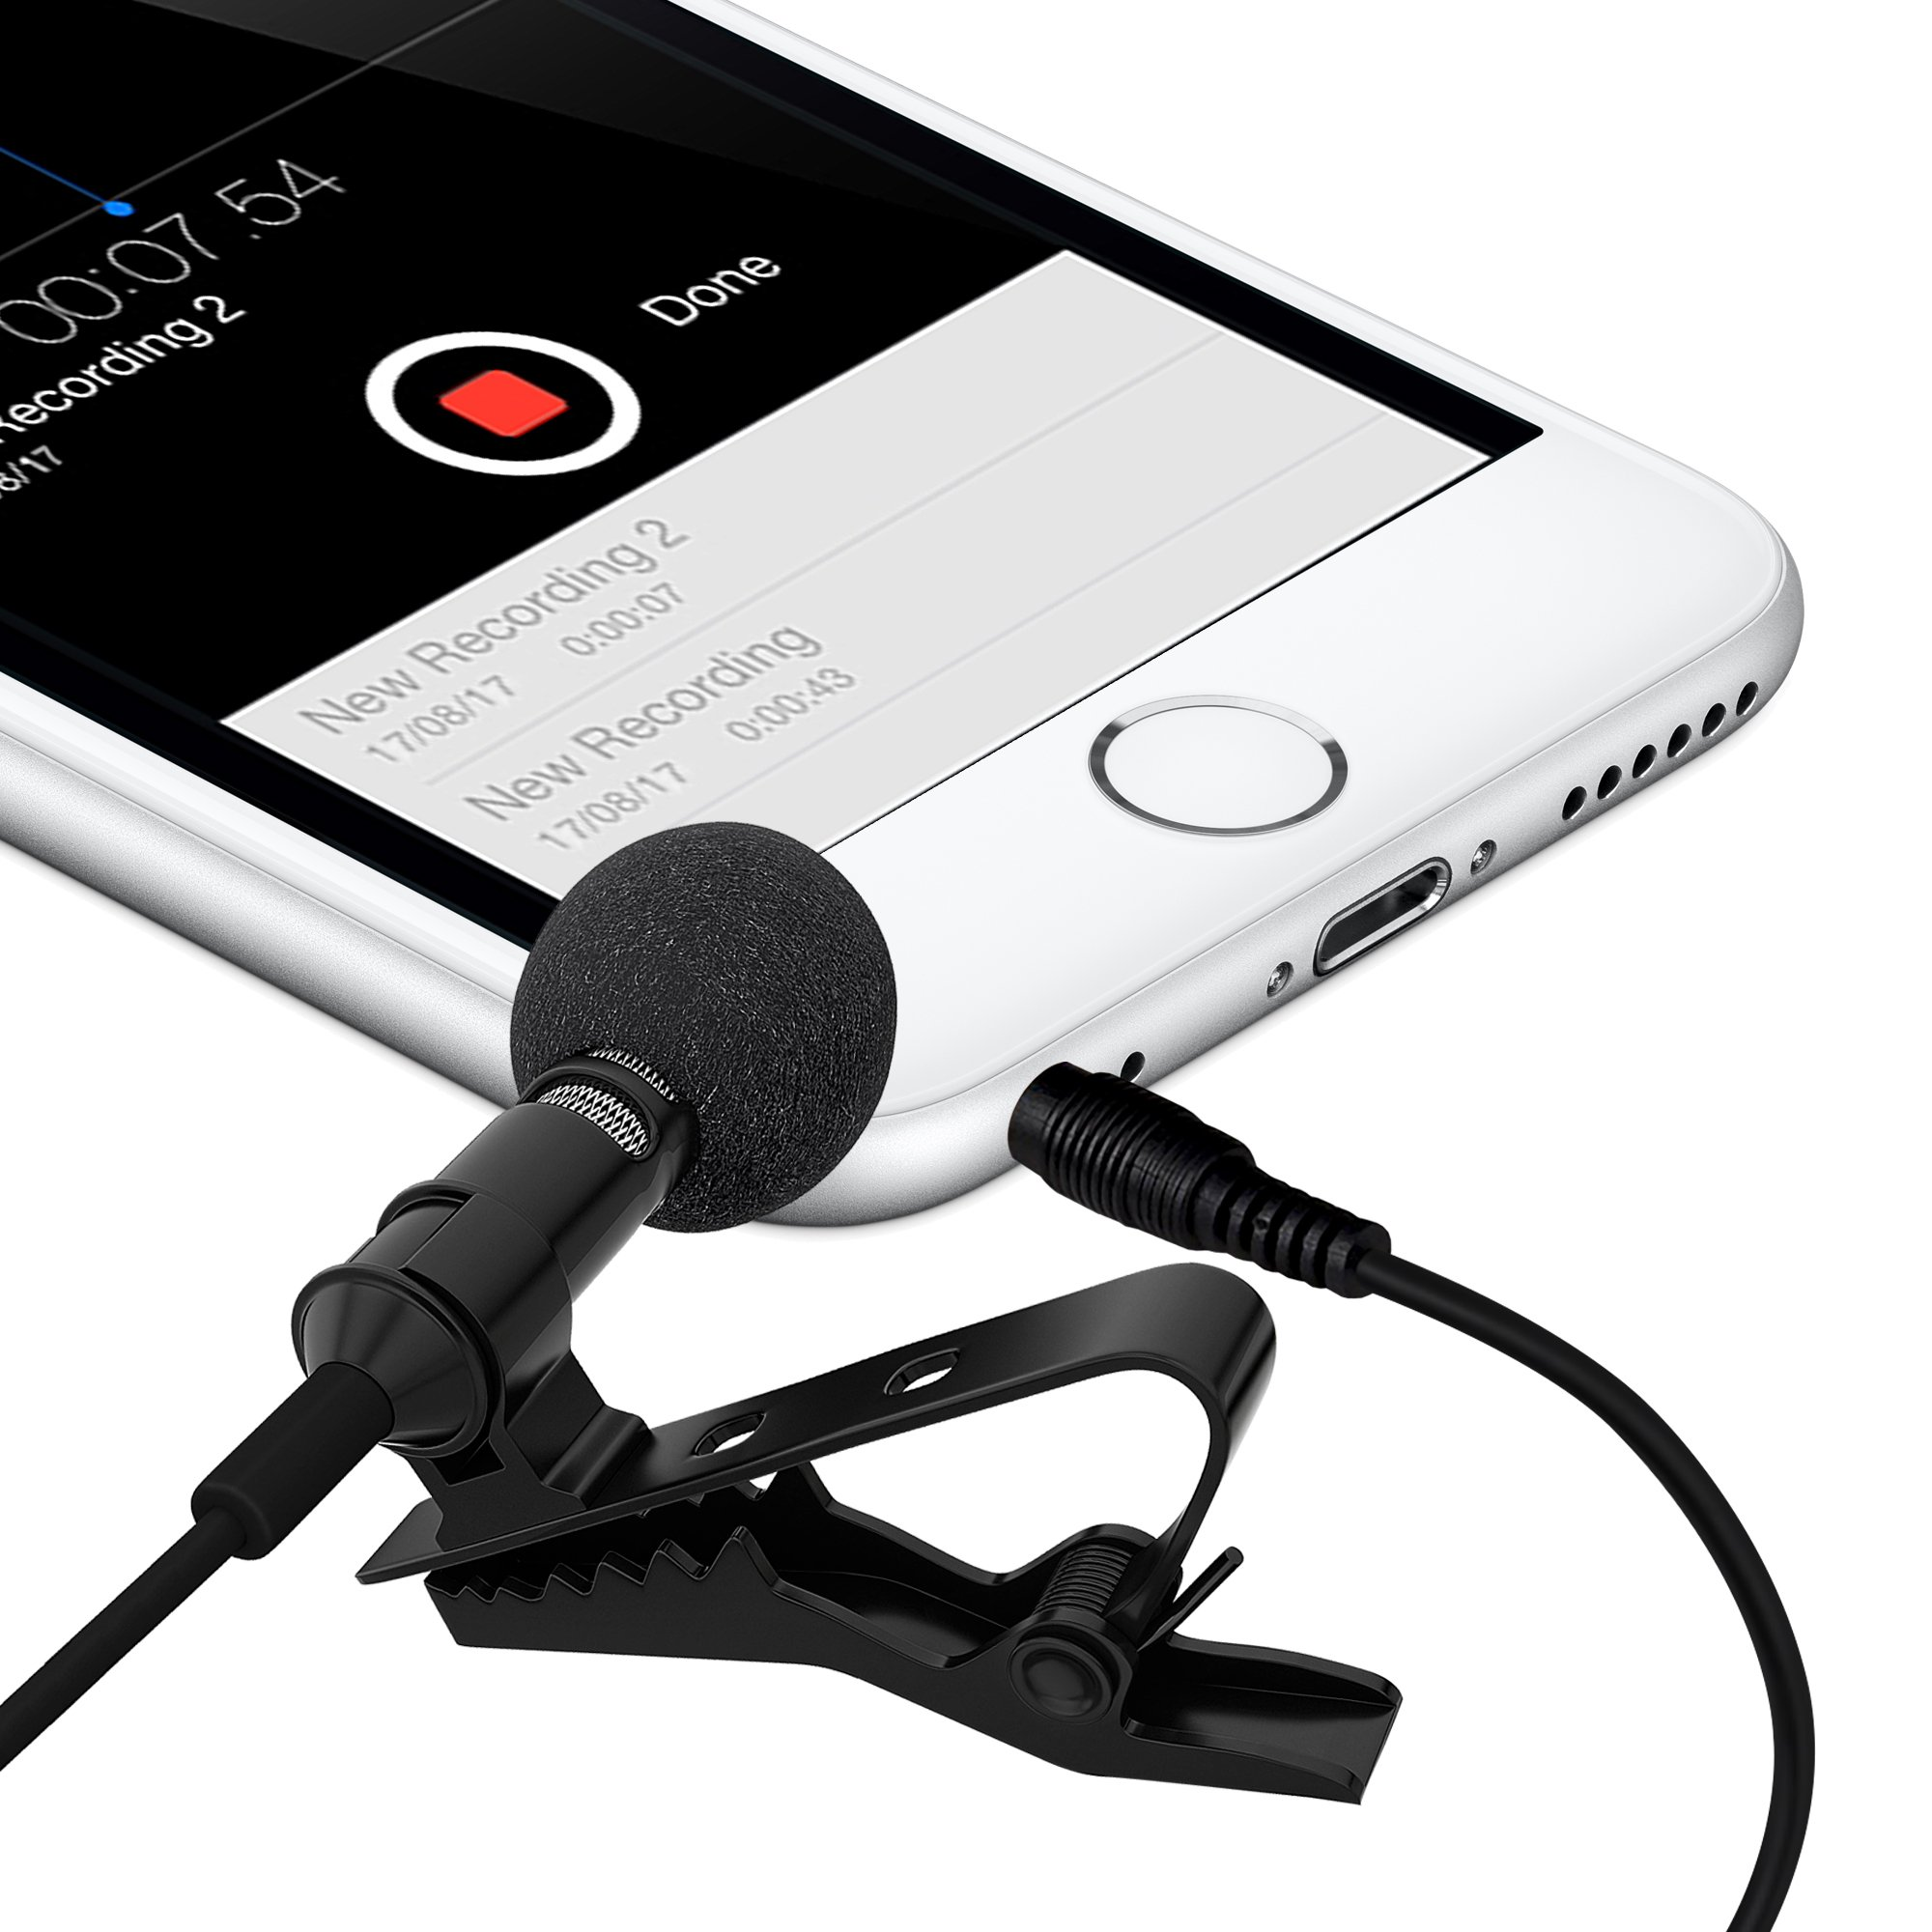 Ultimate Lavalier Microphone For Bloggers And Vloggers Lapel Mic Clip-on Omnidirectional Condenser for Iphone Ipad Samsung Android Windows Smartphones by Miracle Sound